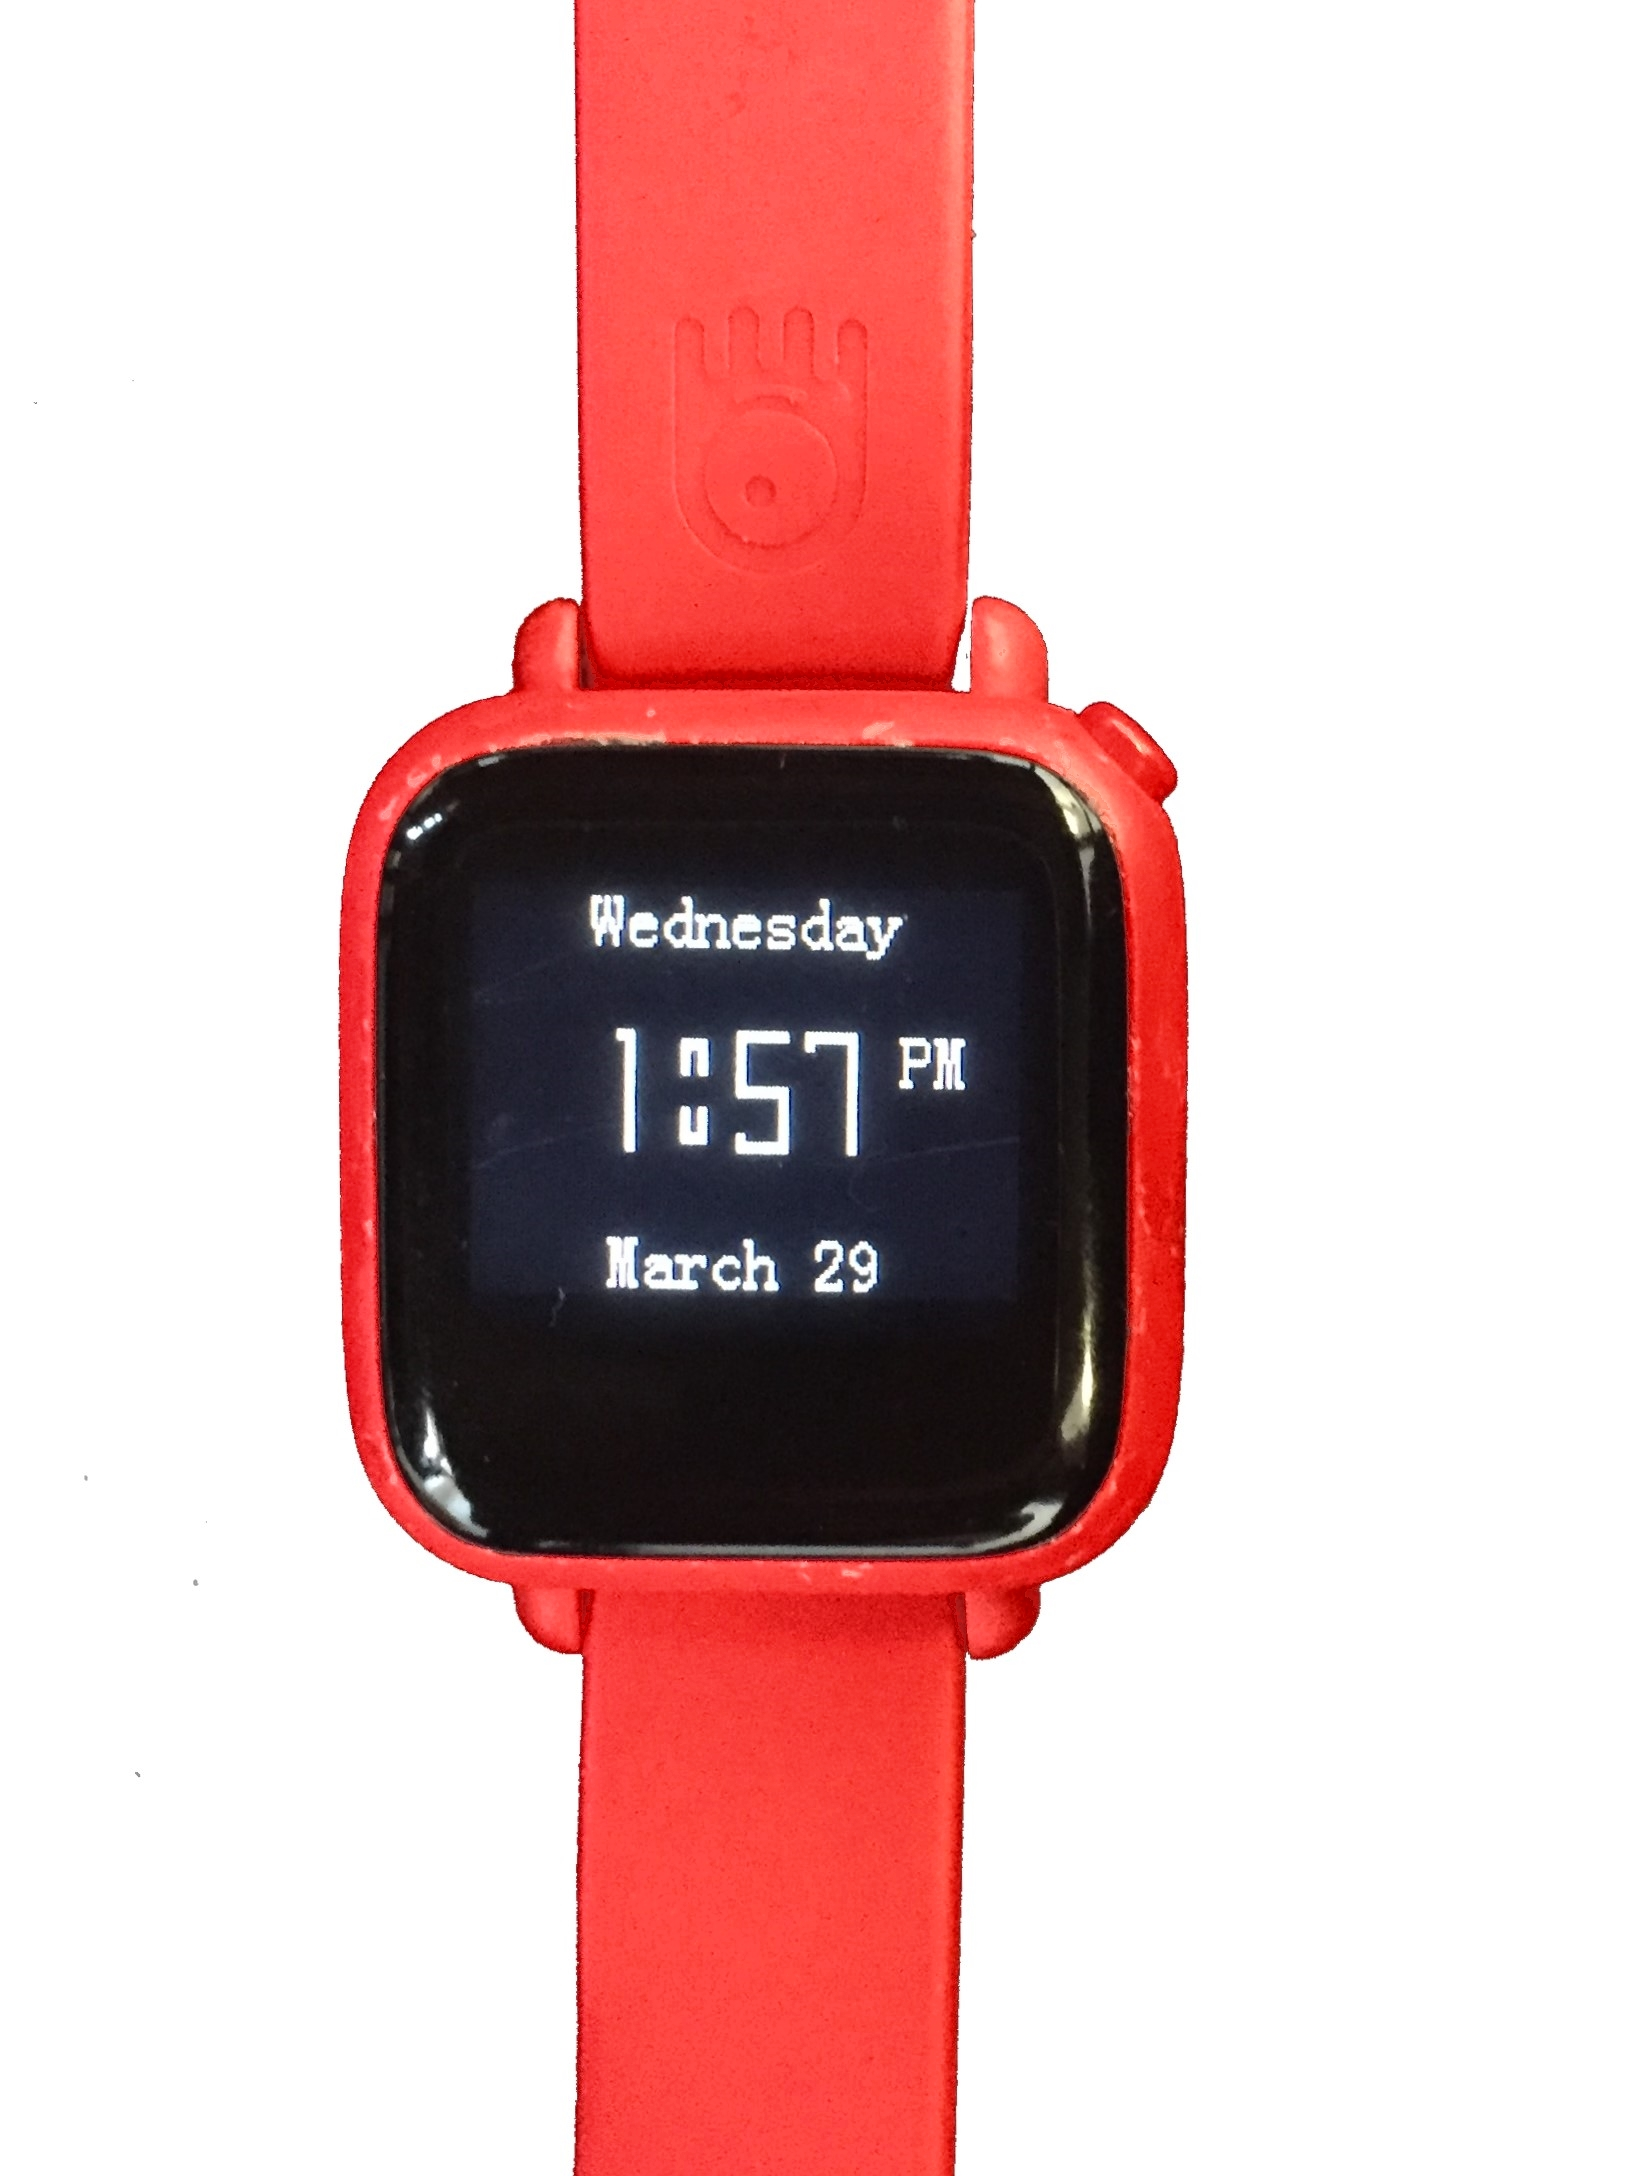 Octopus Watch : digital watch for kids